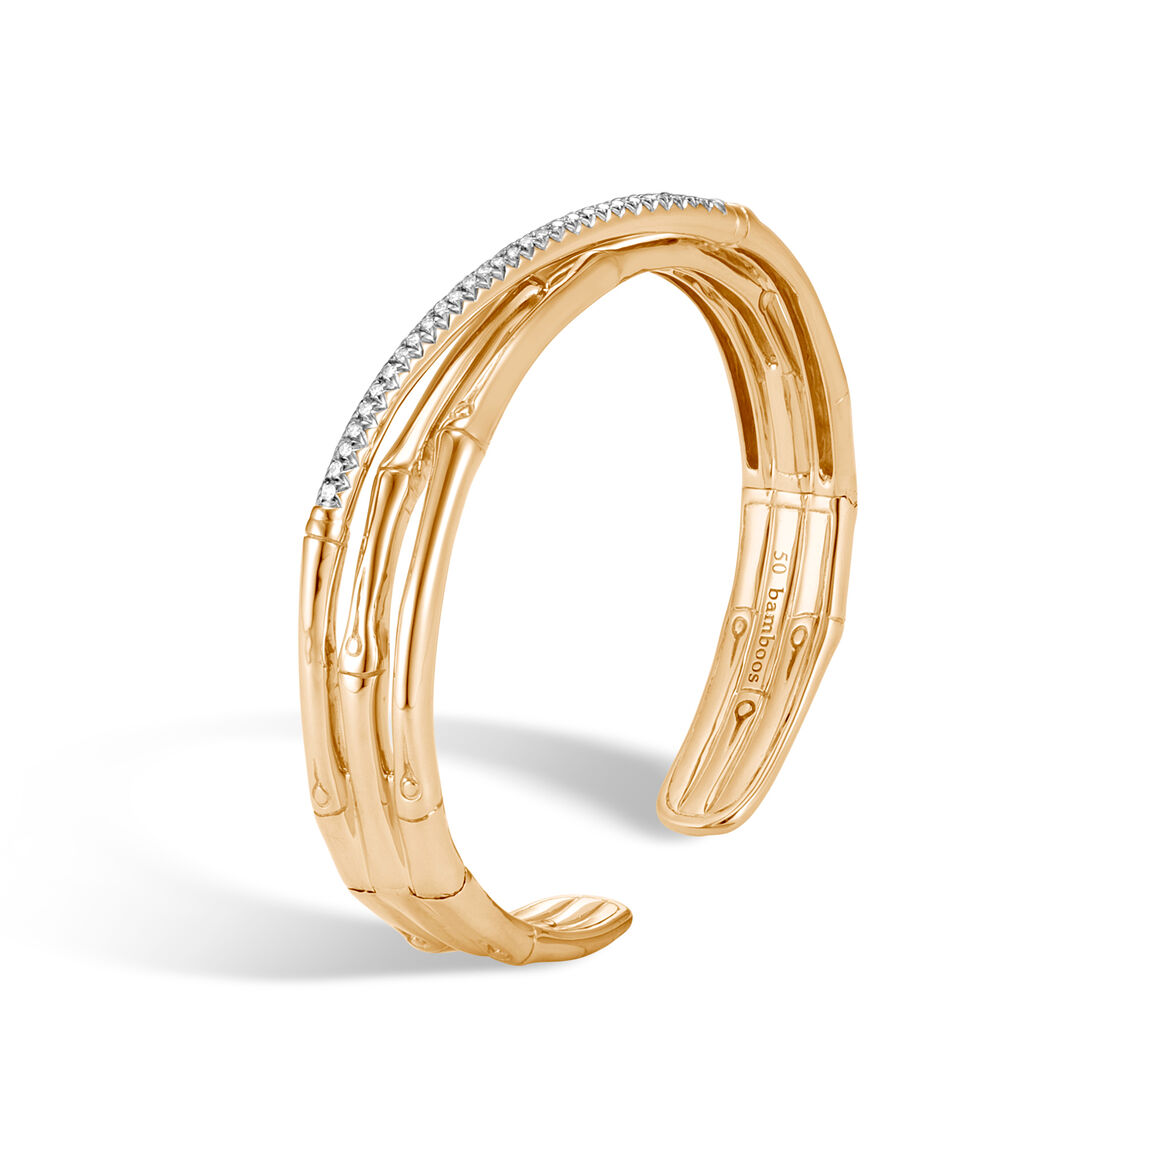 Bamboo Cuff in 18K Gold with  Diamonds